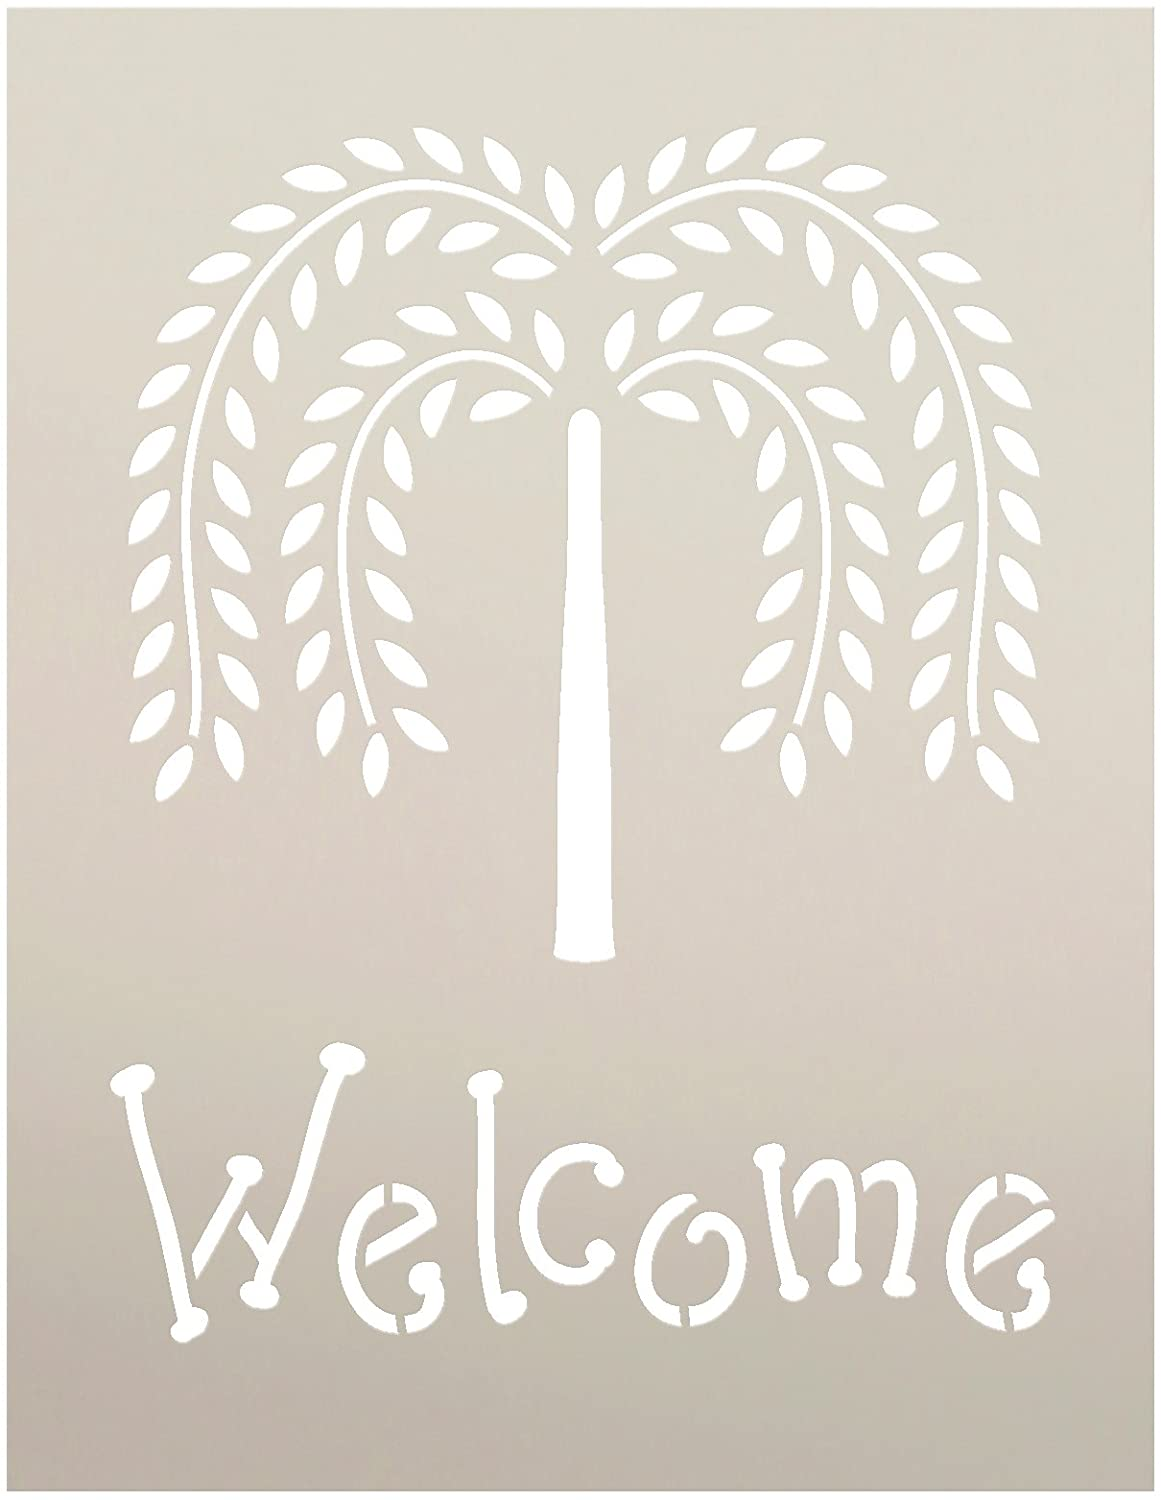 Primitive Willow Tree Welcome Word Stencil by StudioR12 | Paint a Front Porch or Entrance Wood Sign | Reusable Mylar Template | Use for Wall Art, DIY Rustic Country Home Decor - Choose Size